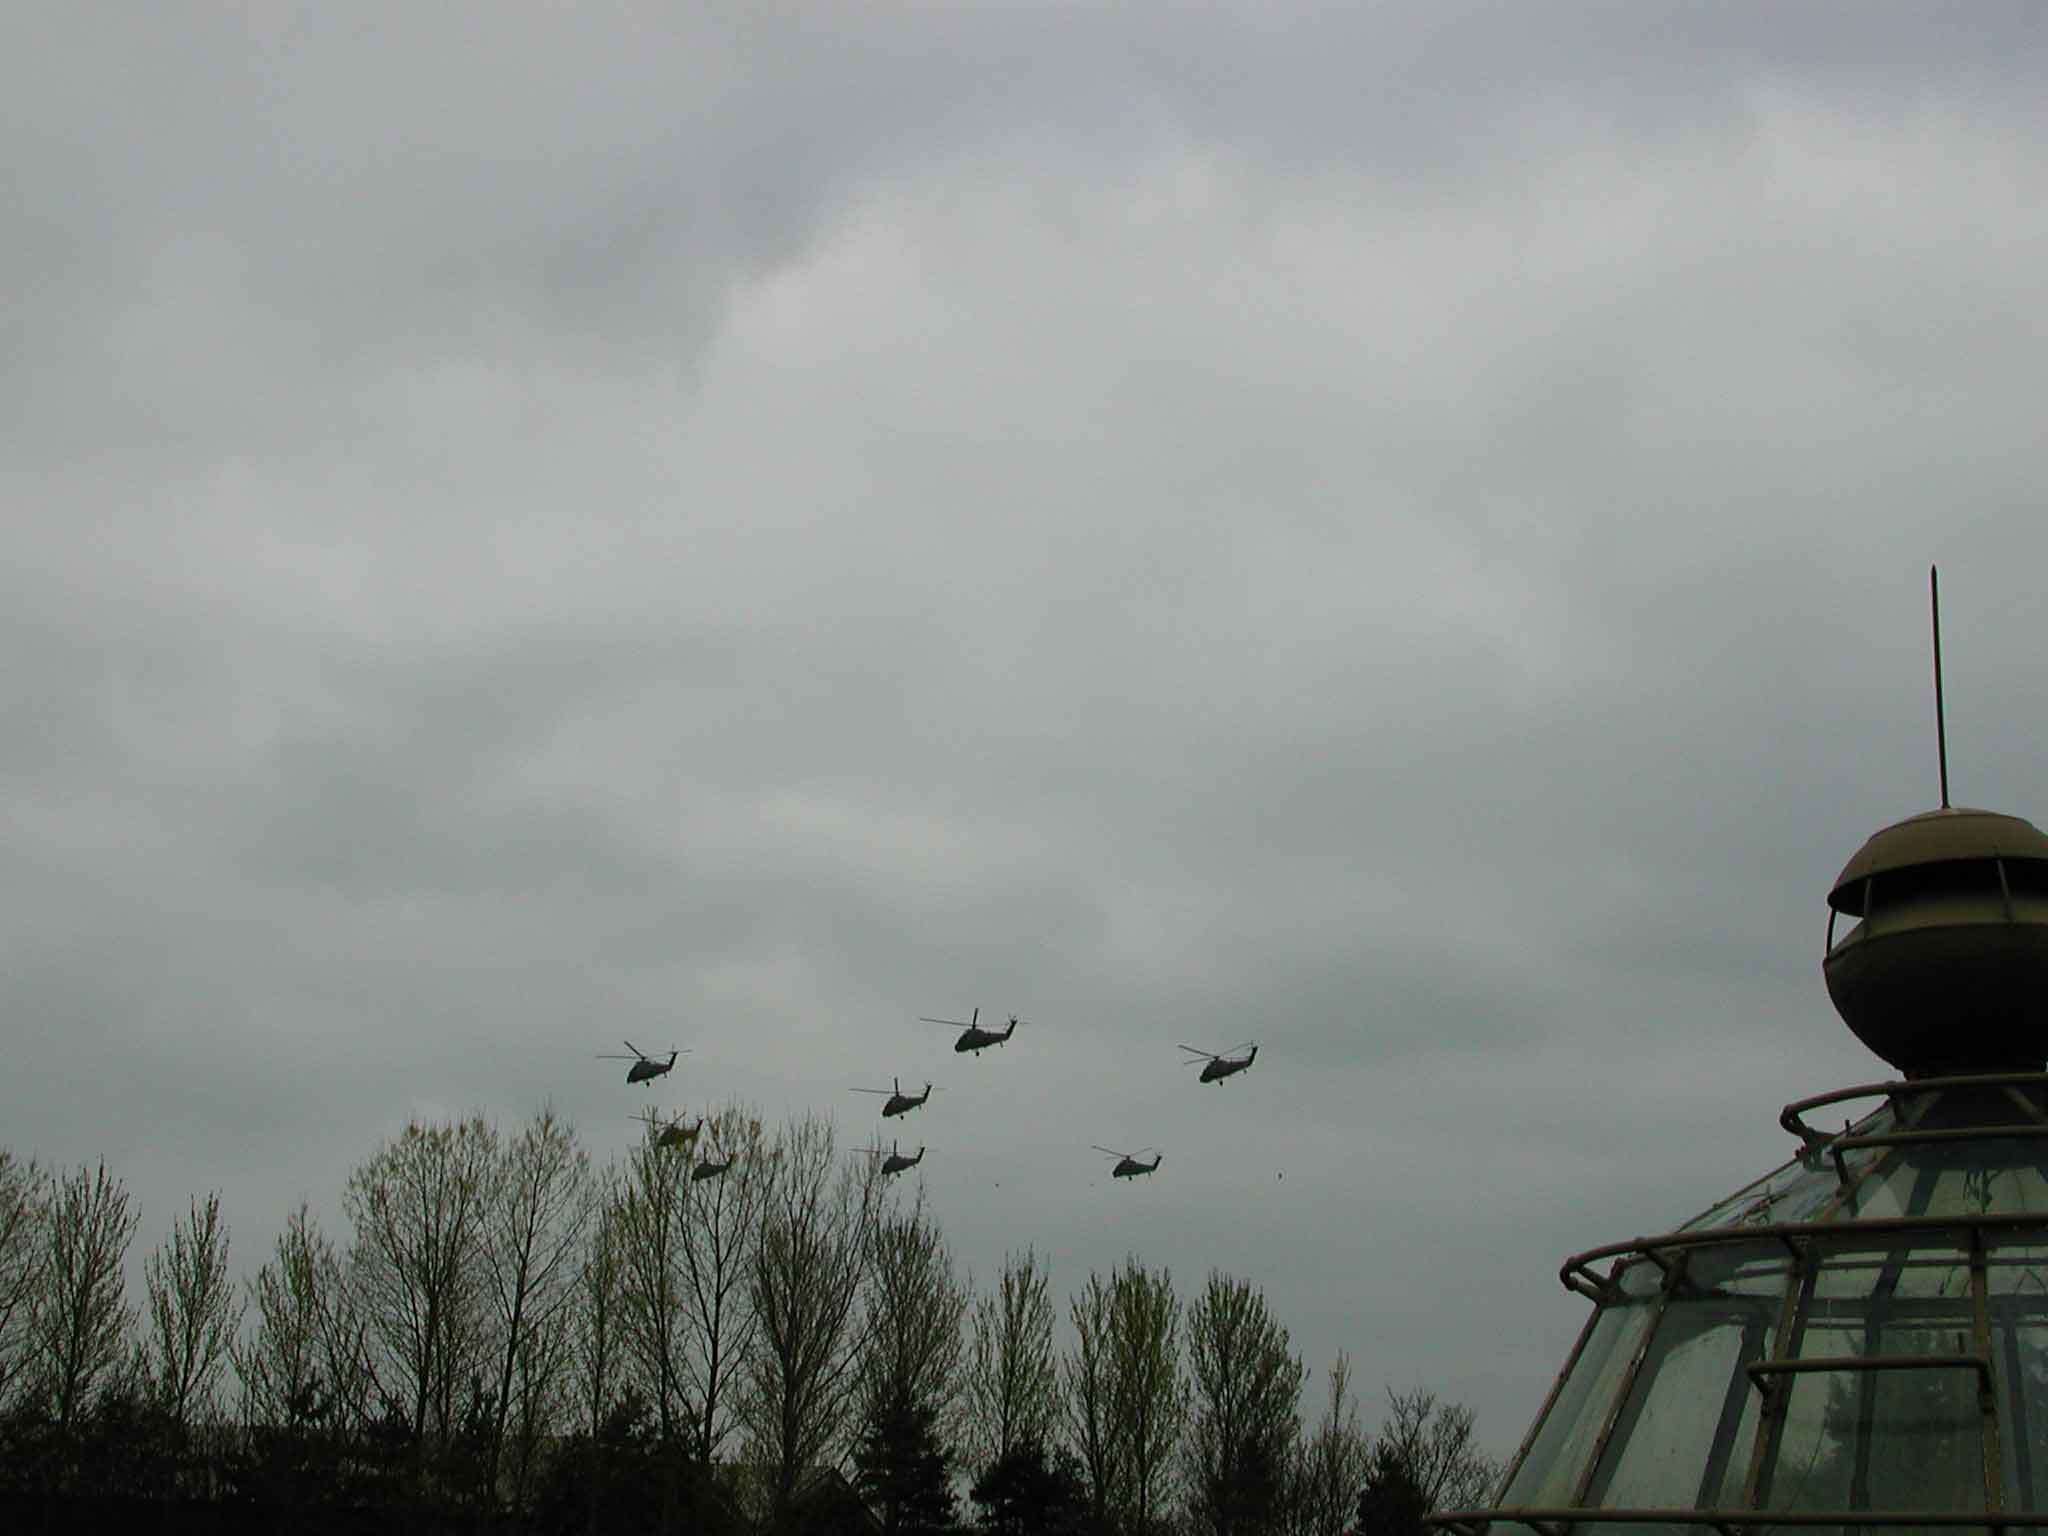 72 Squadron flying past North Weald airfield